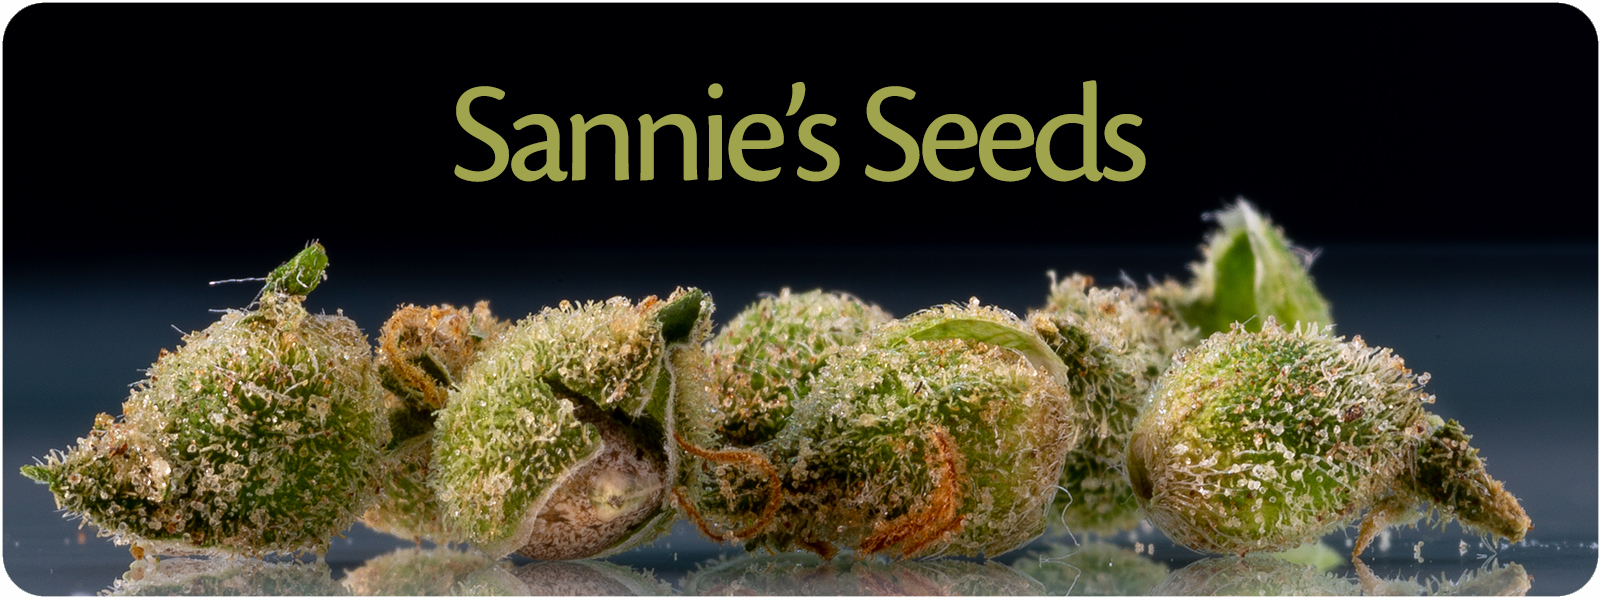 Regular sanniesseeds for growing the strongest plants and do selections to find winning plants